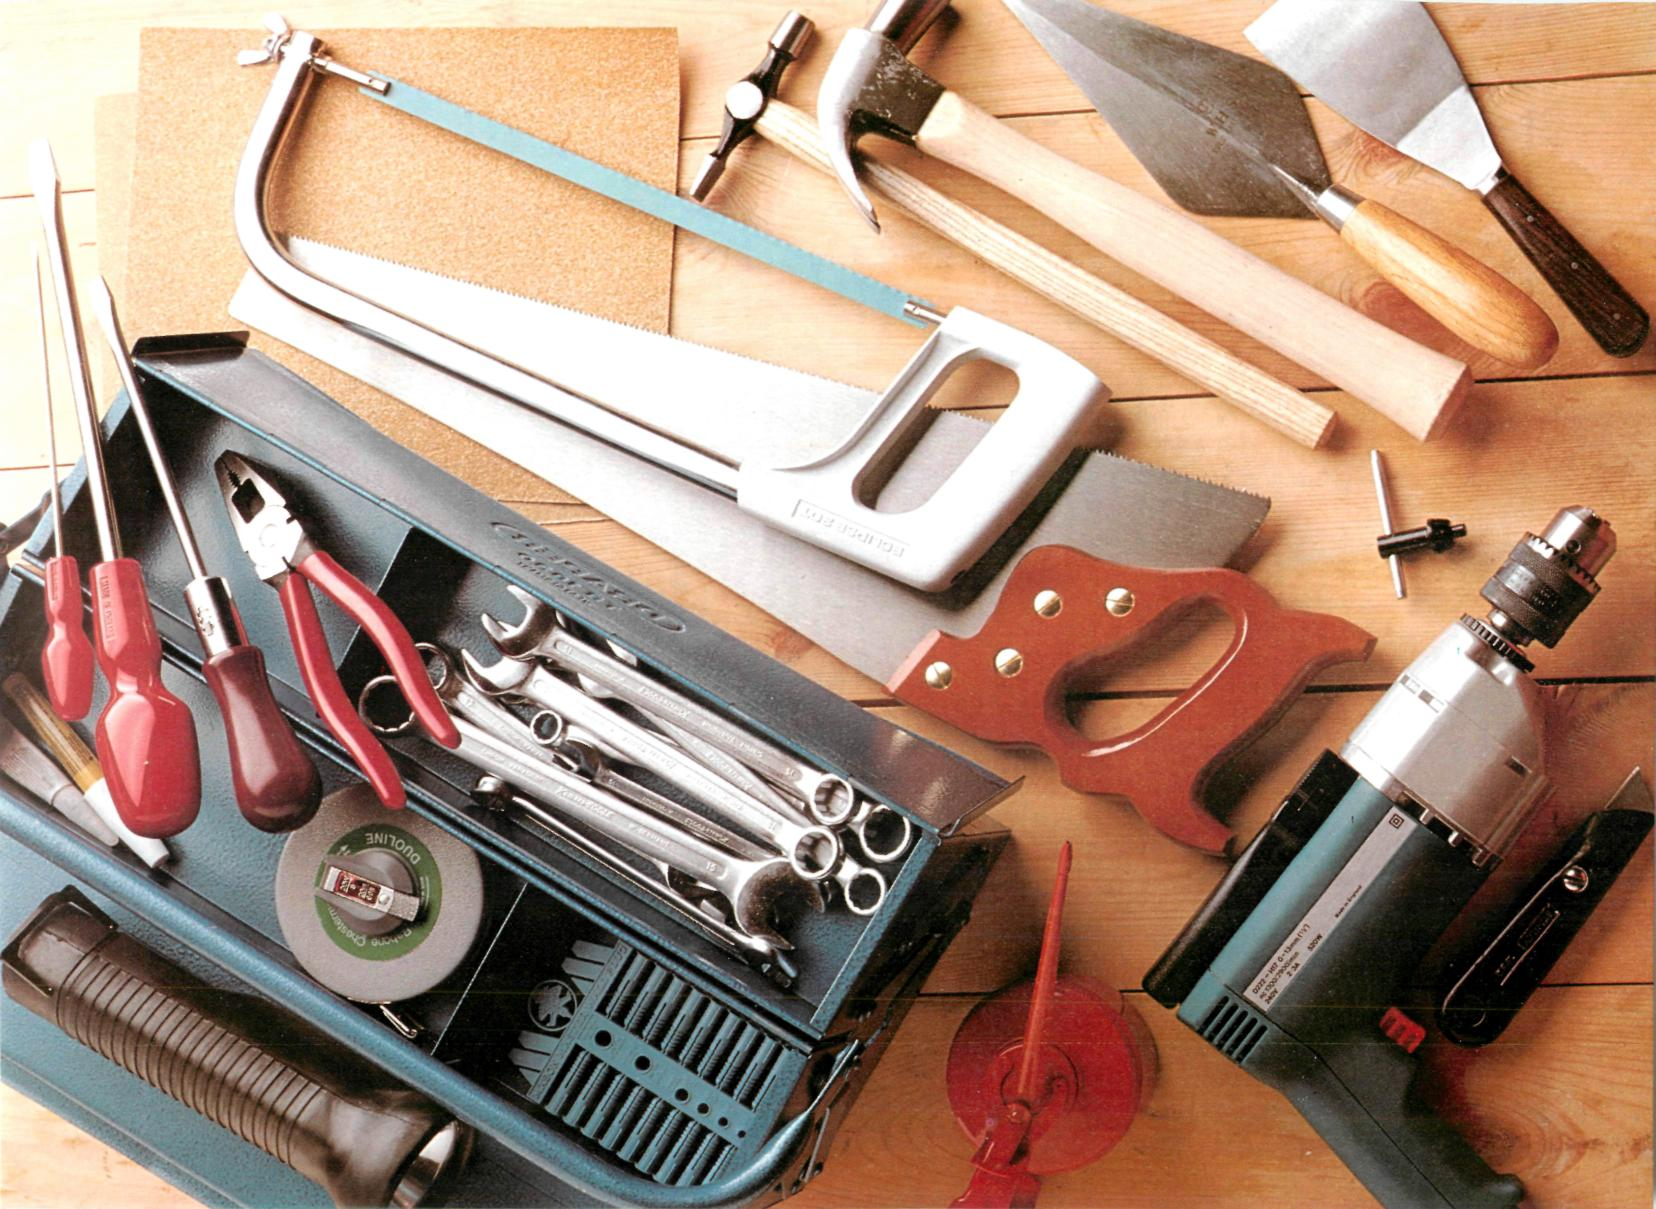 Essential Tools And Equipment For Home Maintenance